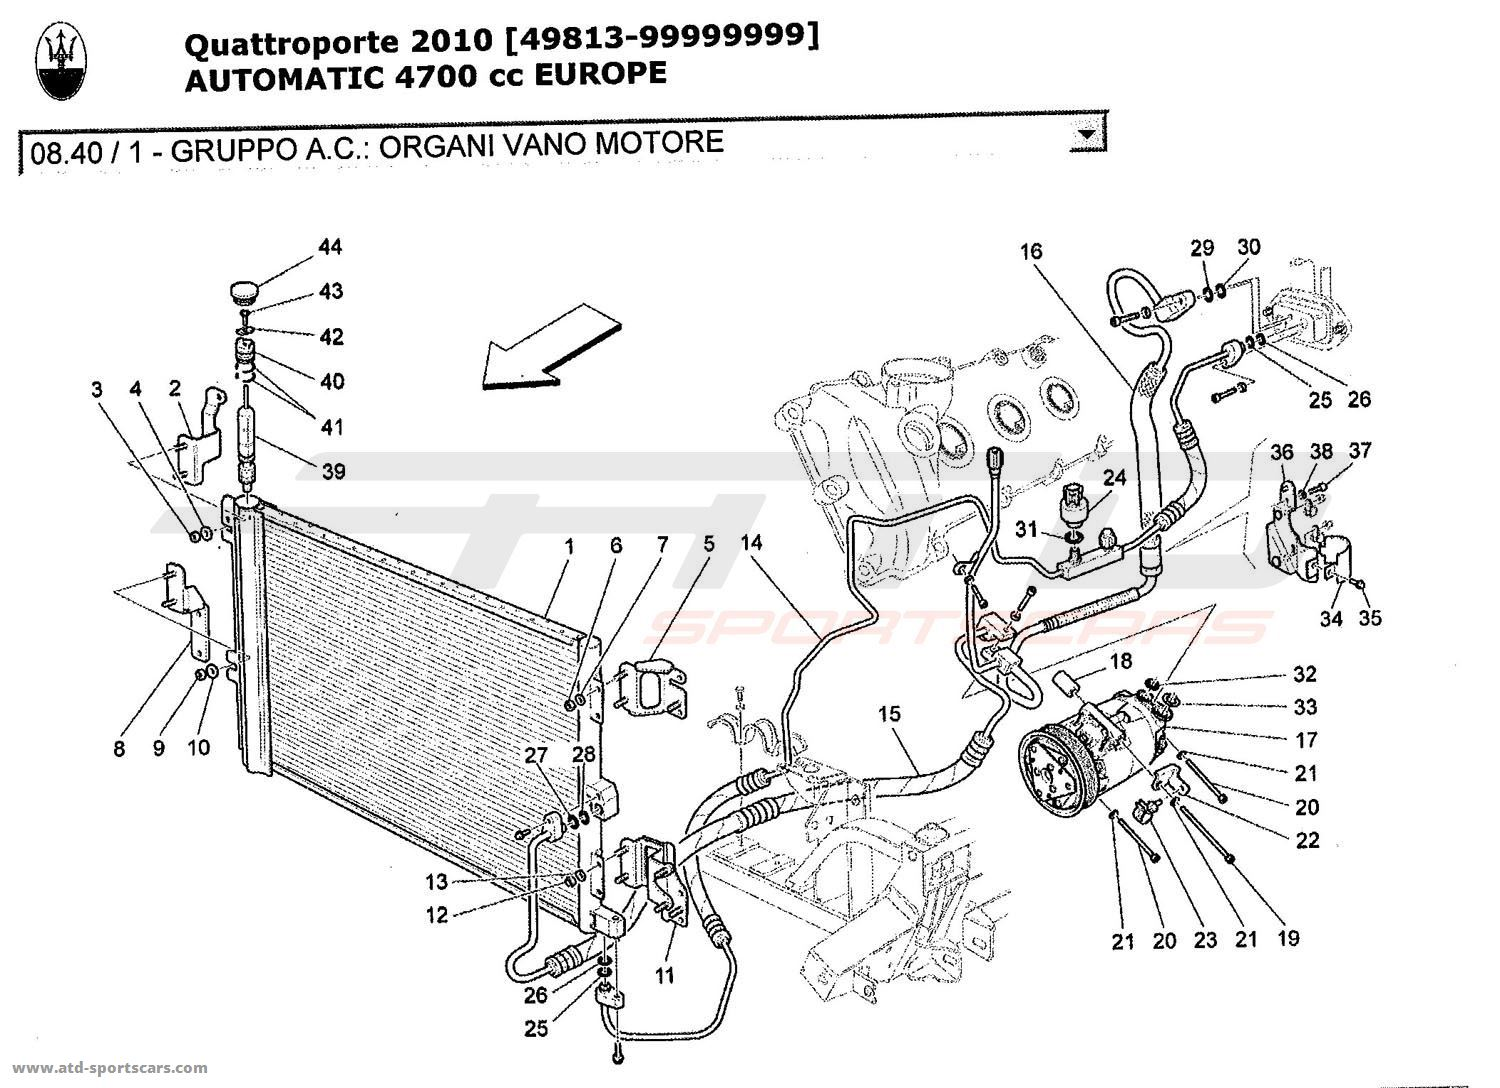 maserati quattroporte 4,7l boite auto 2010 a c unit engine Tesla Model S Engine Diagram maserati quattroporte 4,7l boite auto 2010 a c unit engine compartment devices